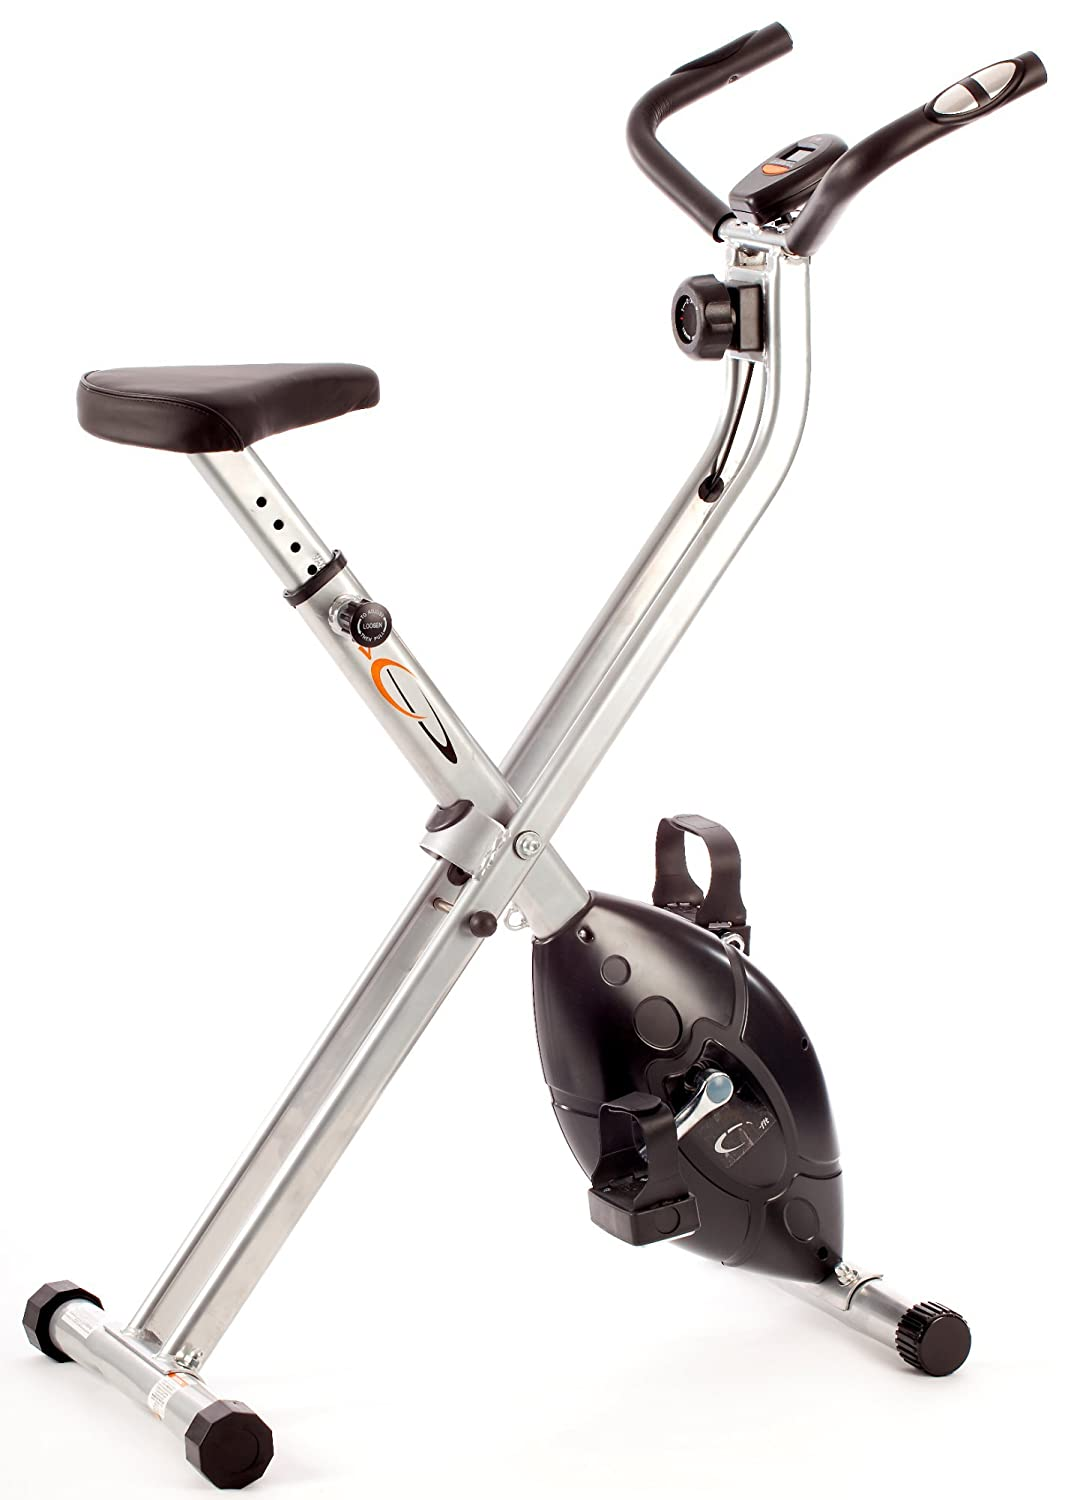 V Fit MXC1 Folding Bicicleta estatica plegable con resistencia